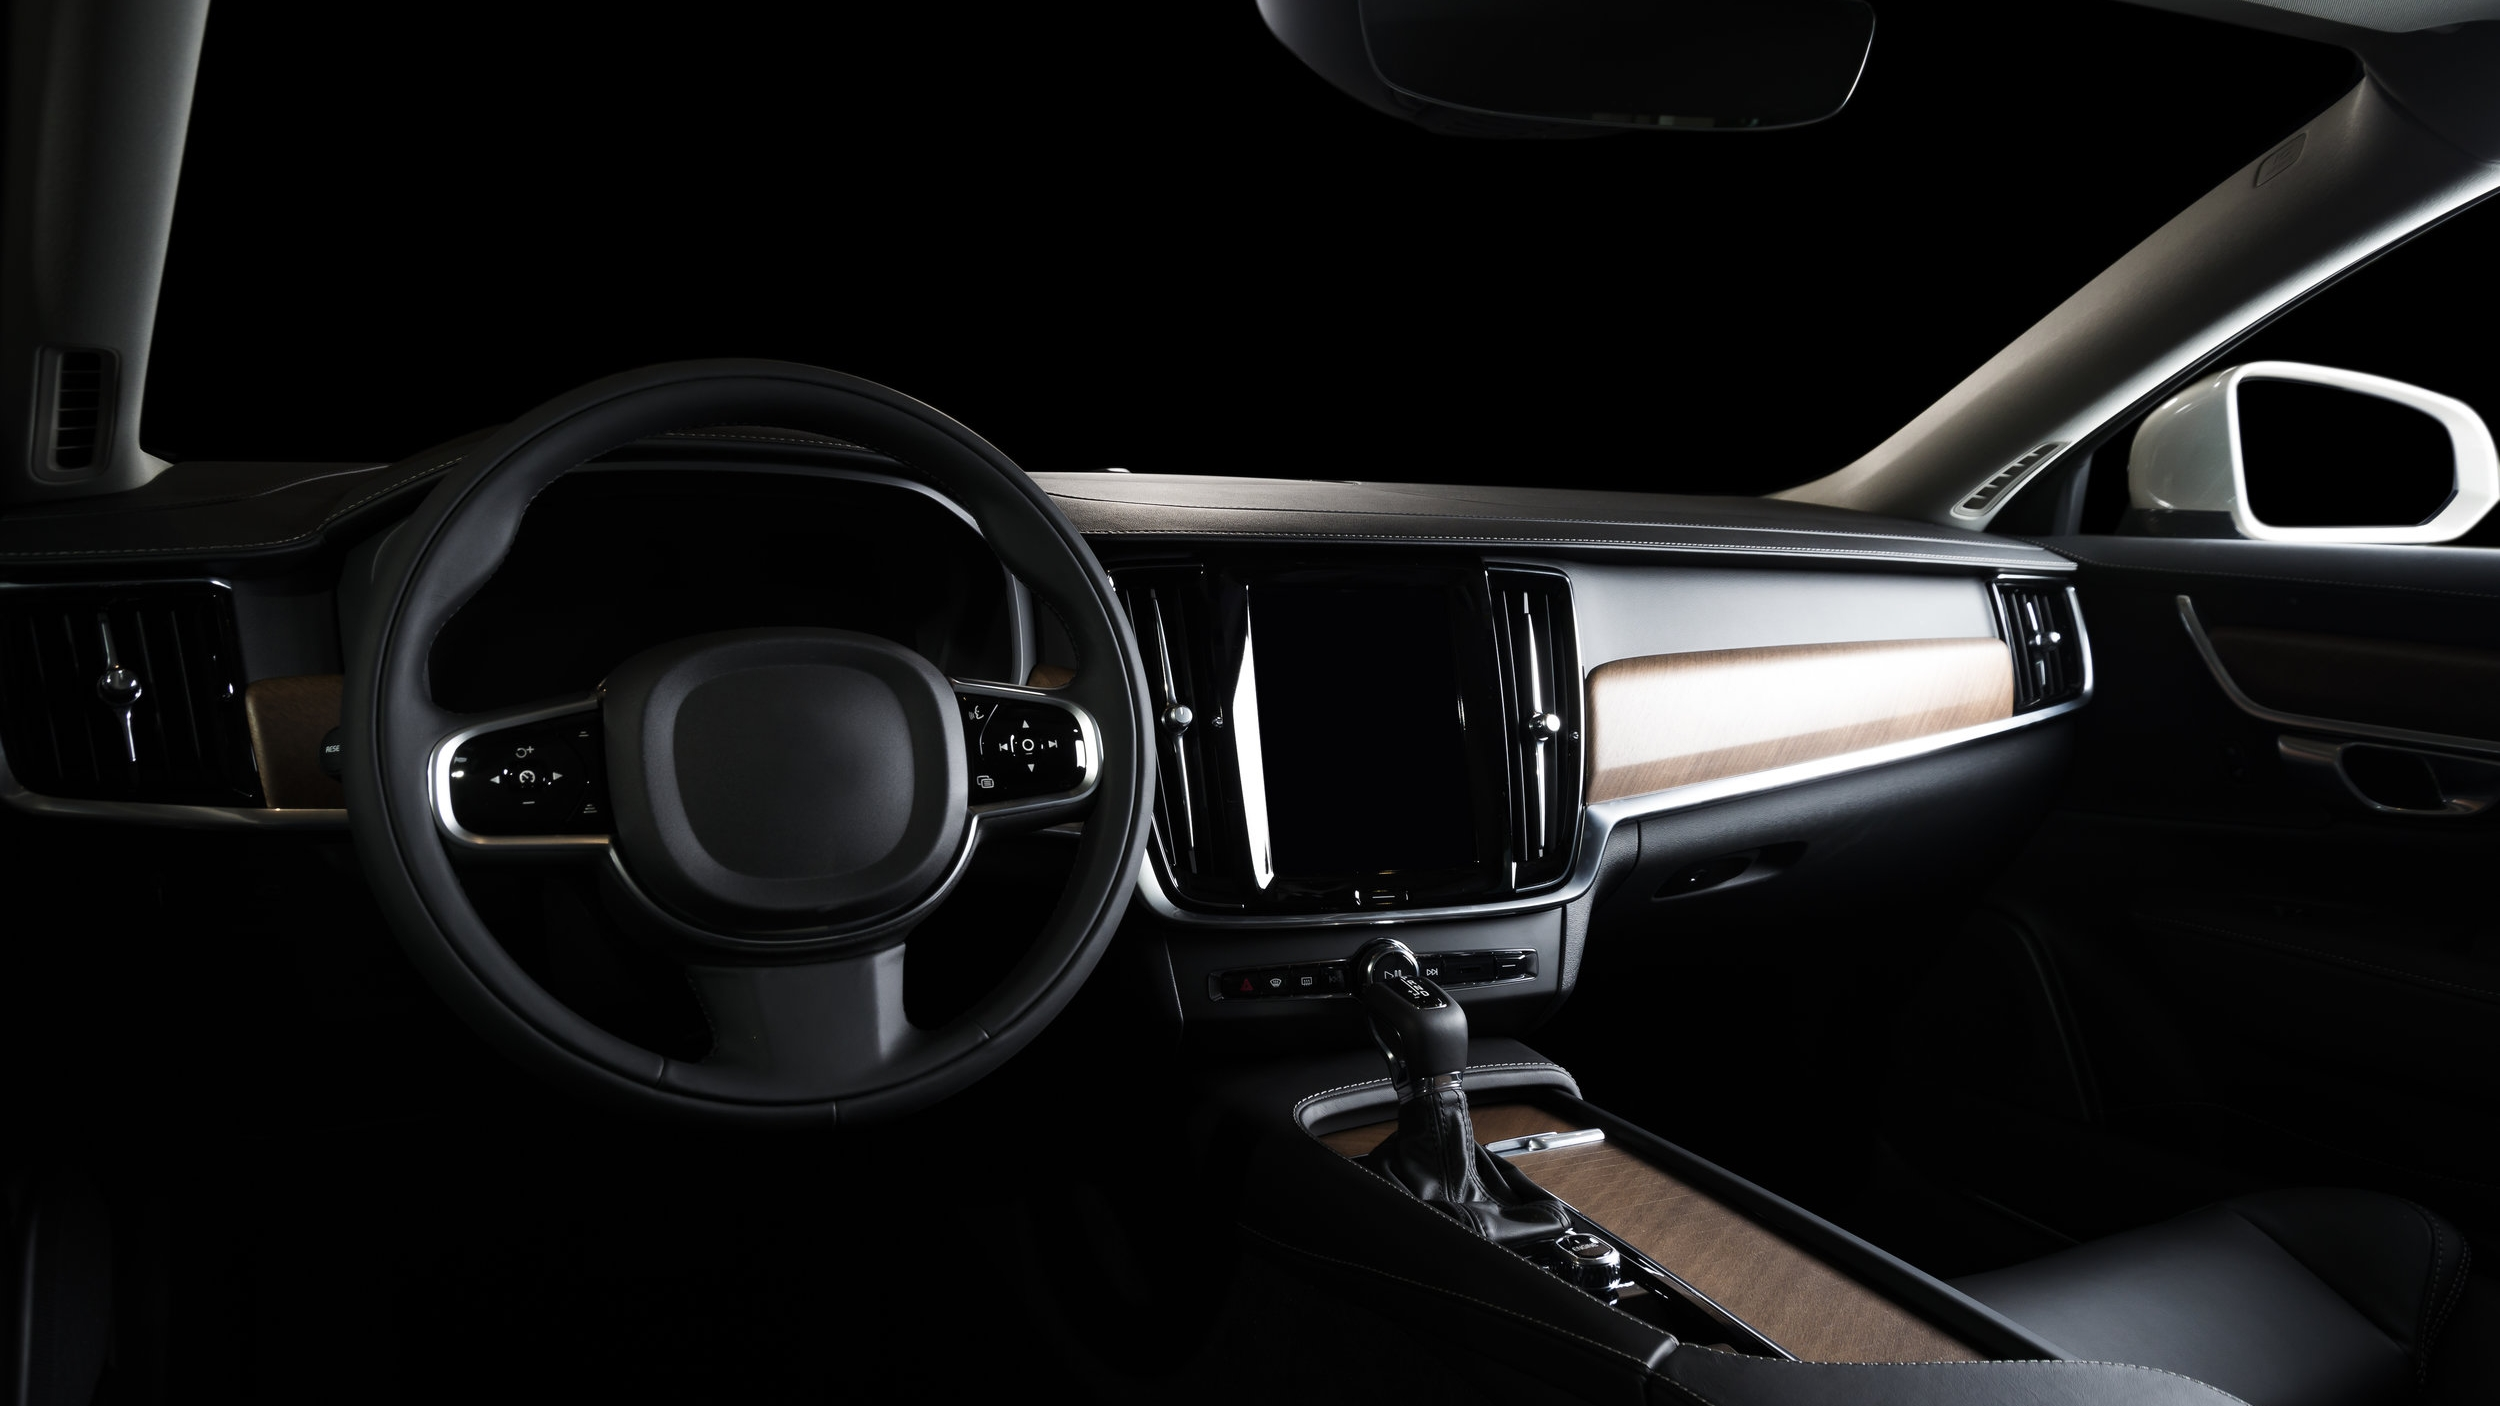 Interior Super Clean - starting at $89.99No carpets. Dash, doors clean and condition.